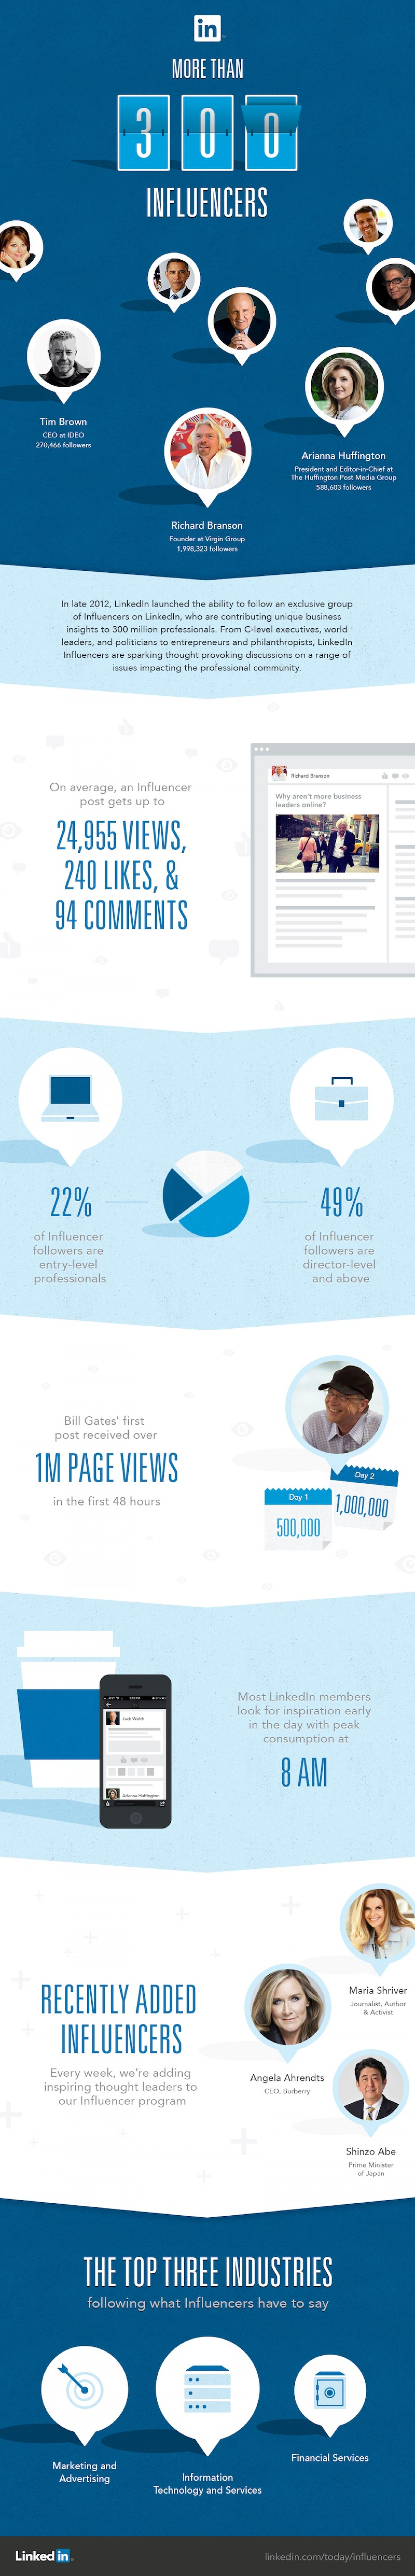 LinkedIn Influencers Infographic